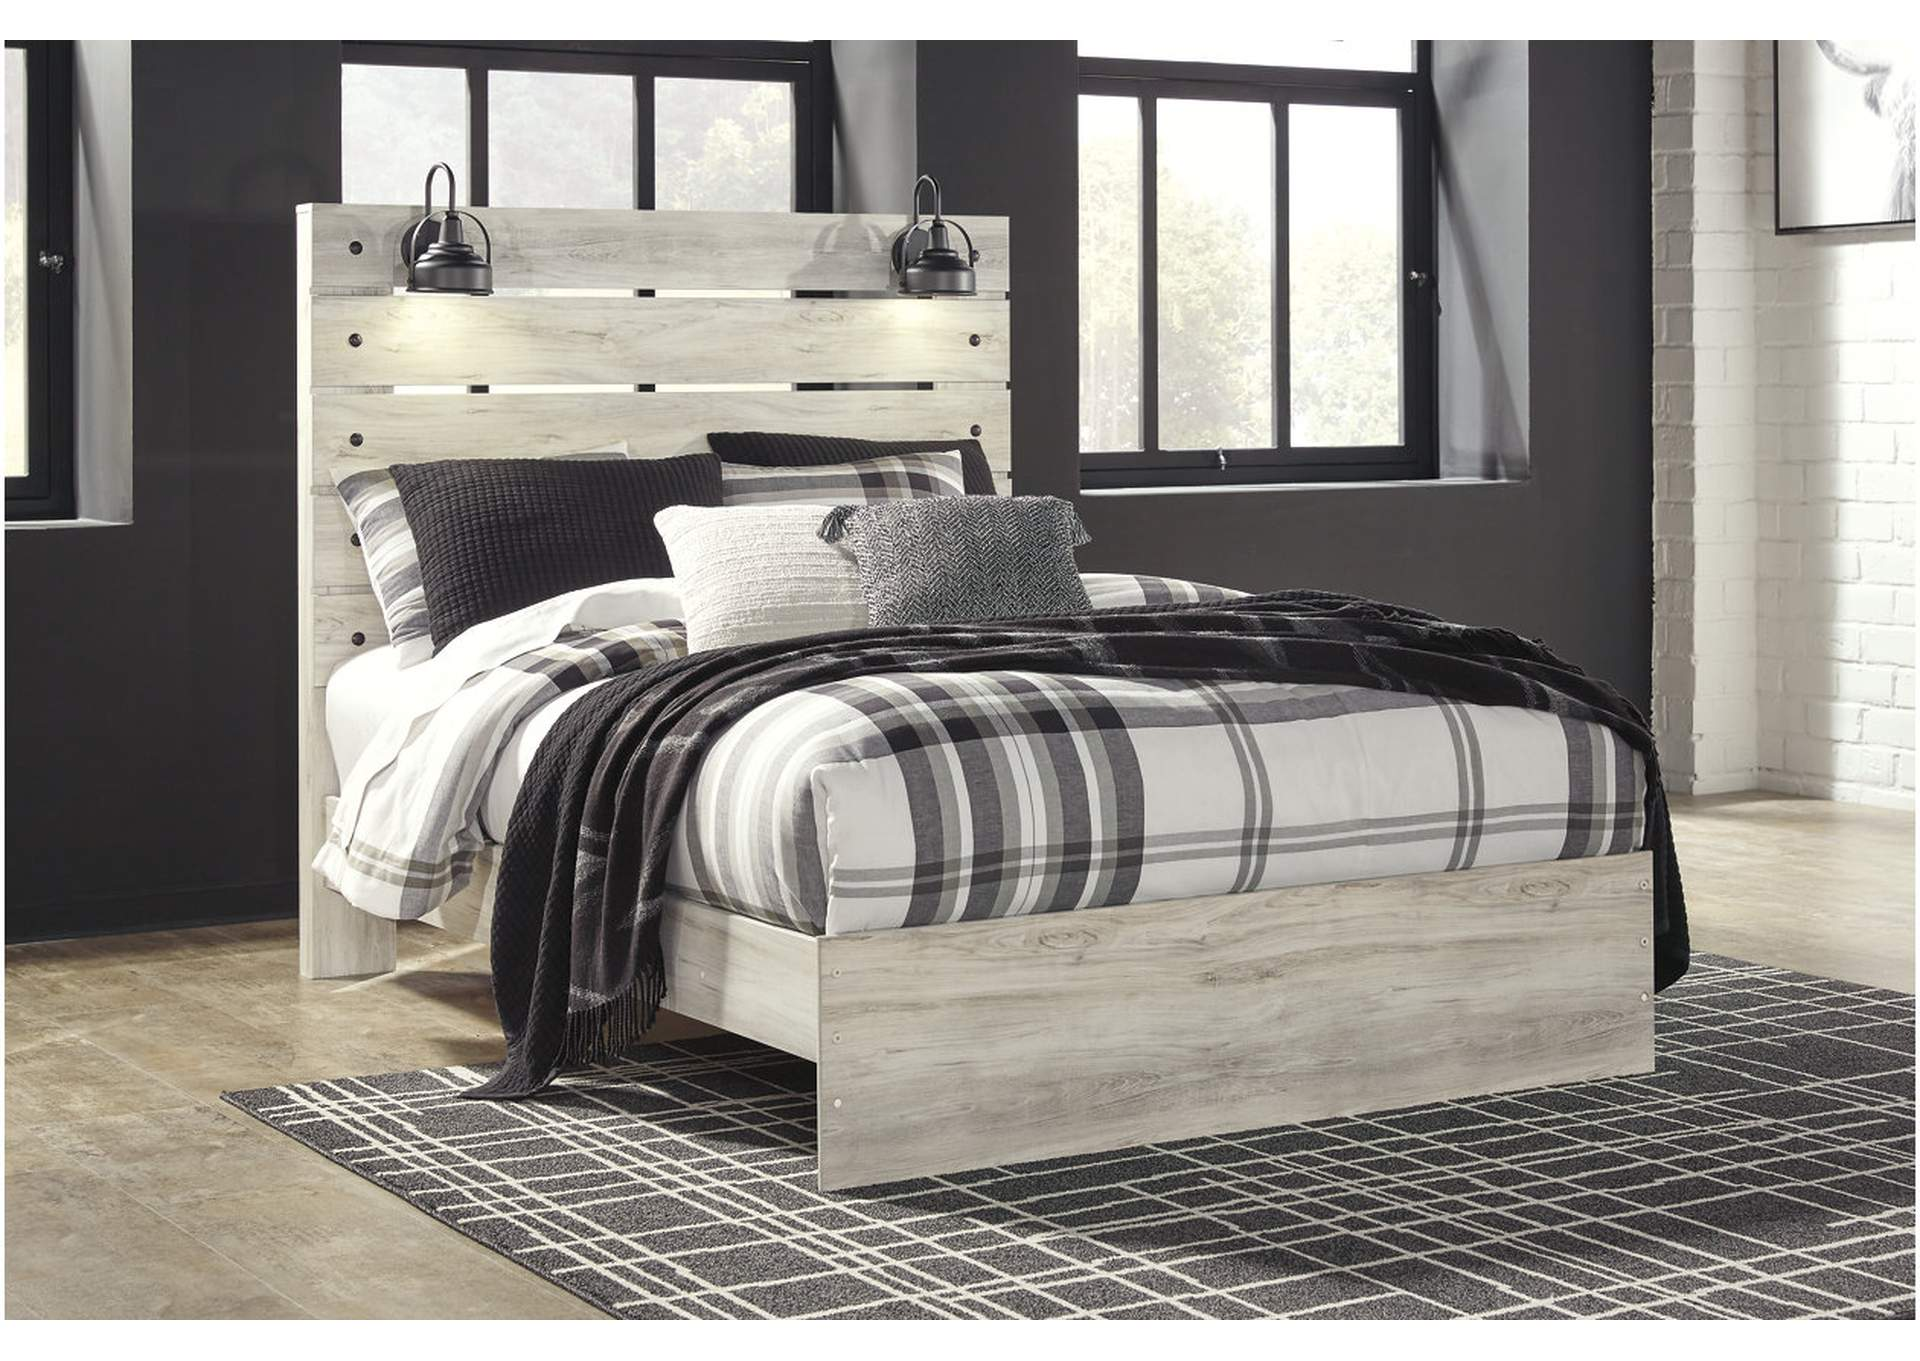 Cambeck Queen Panel Bed,Signature Design By Ashley